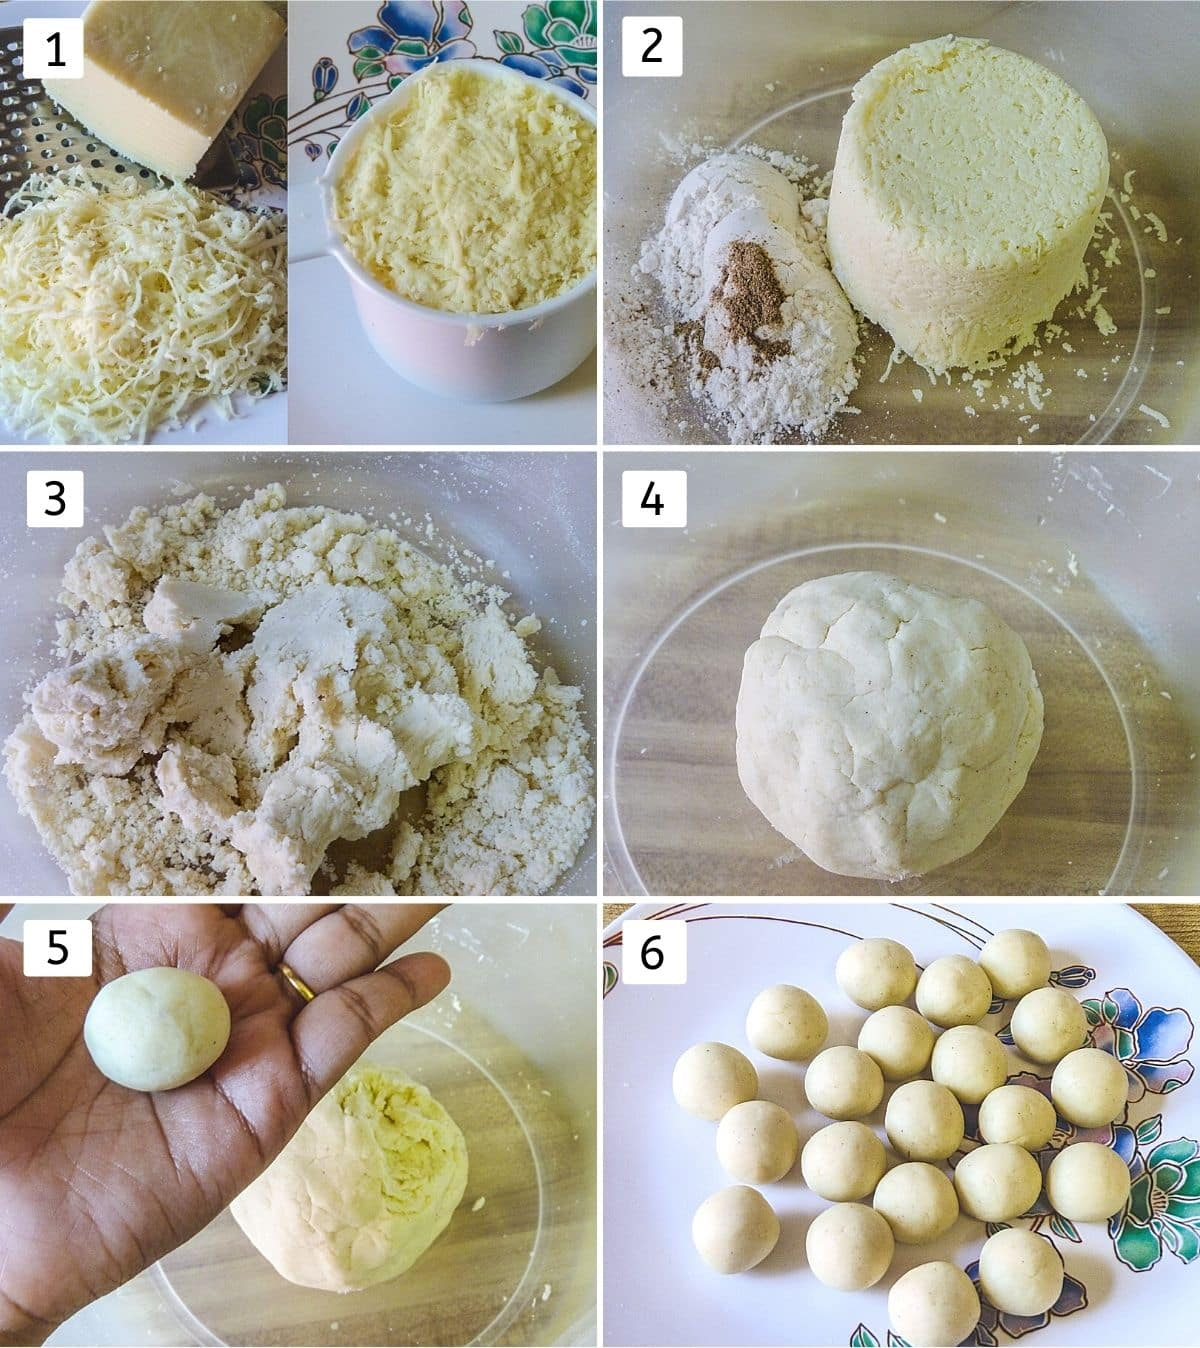 Collage of 6 steps showing grated khoya, added to the bowl with flour, mixed, made into dough, shaping ball, jamuns in a plate